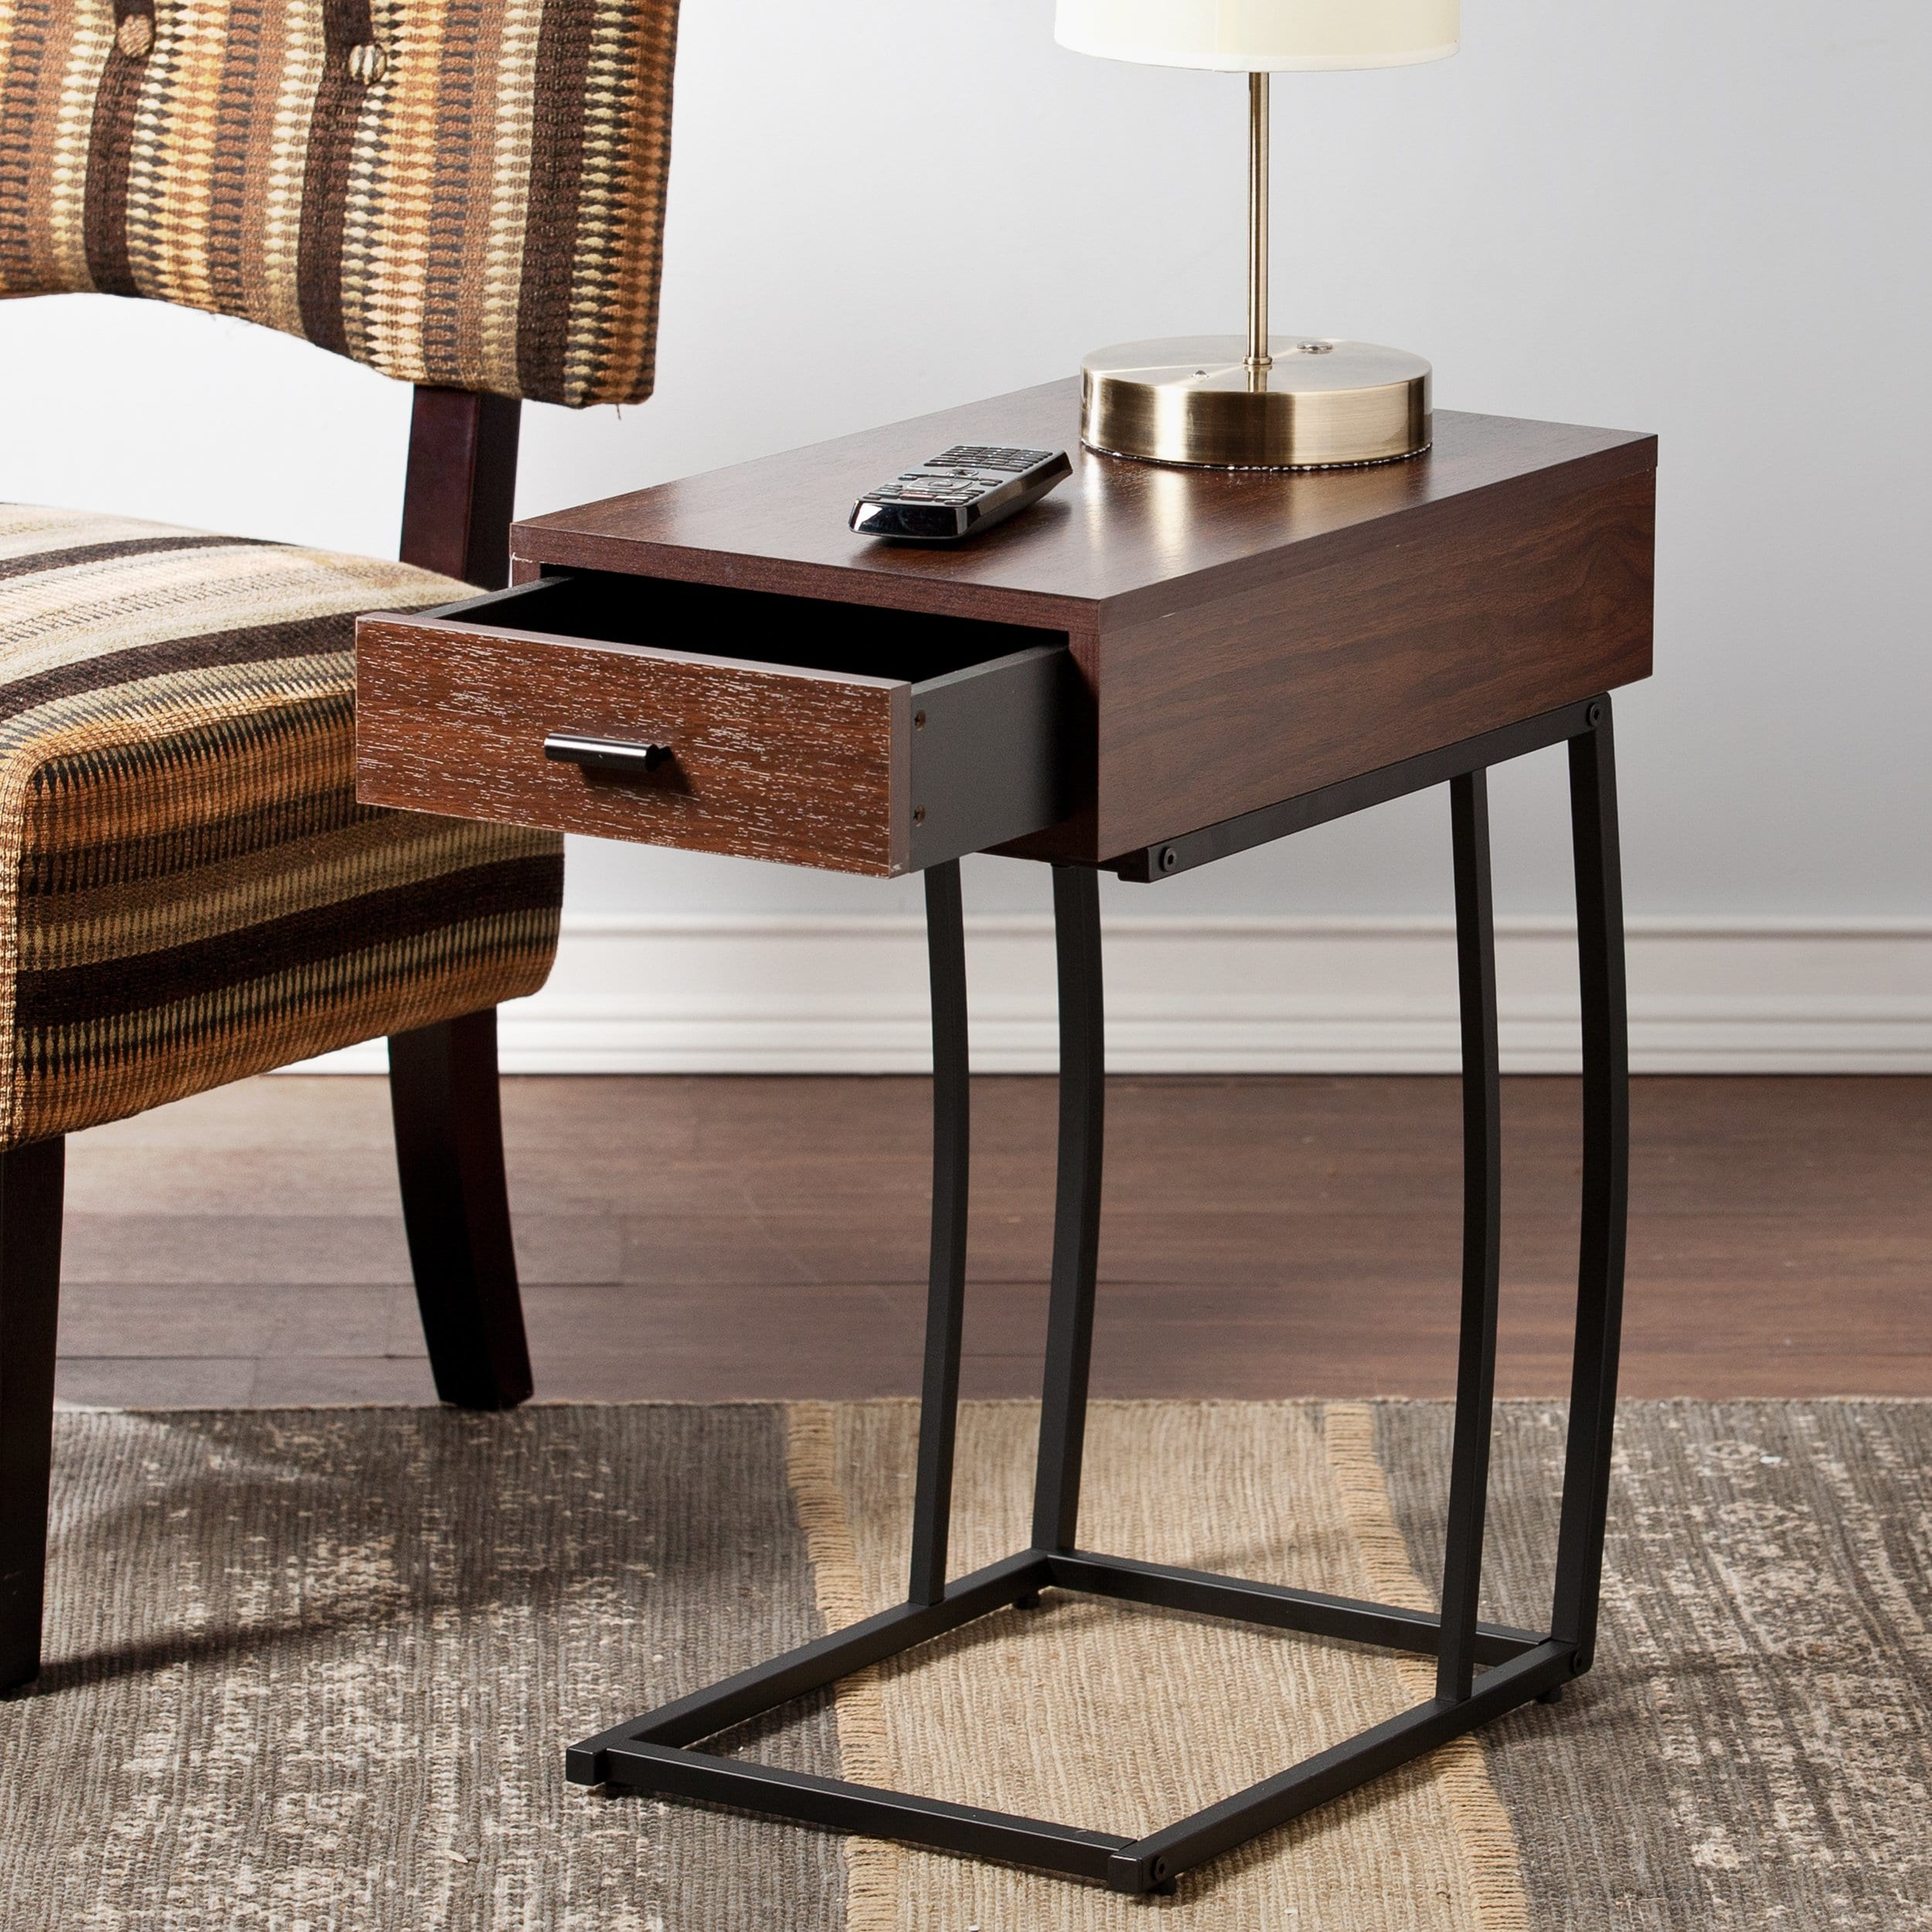 copper grove liatris side table power and usb clay alder home line accent with marble dining room vintage coffee plastic garden furniture hooker narrow cabinet wood end plans mid